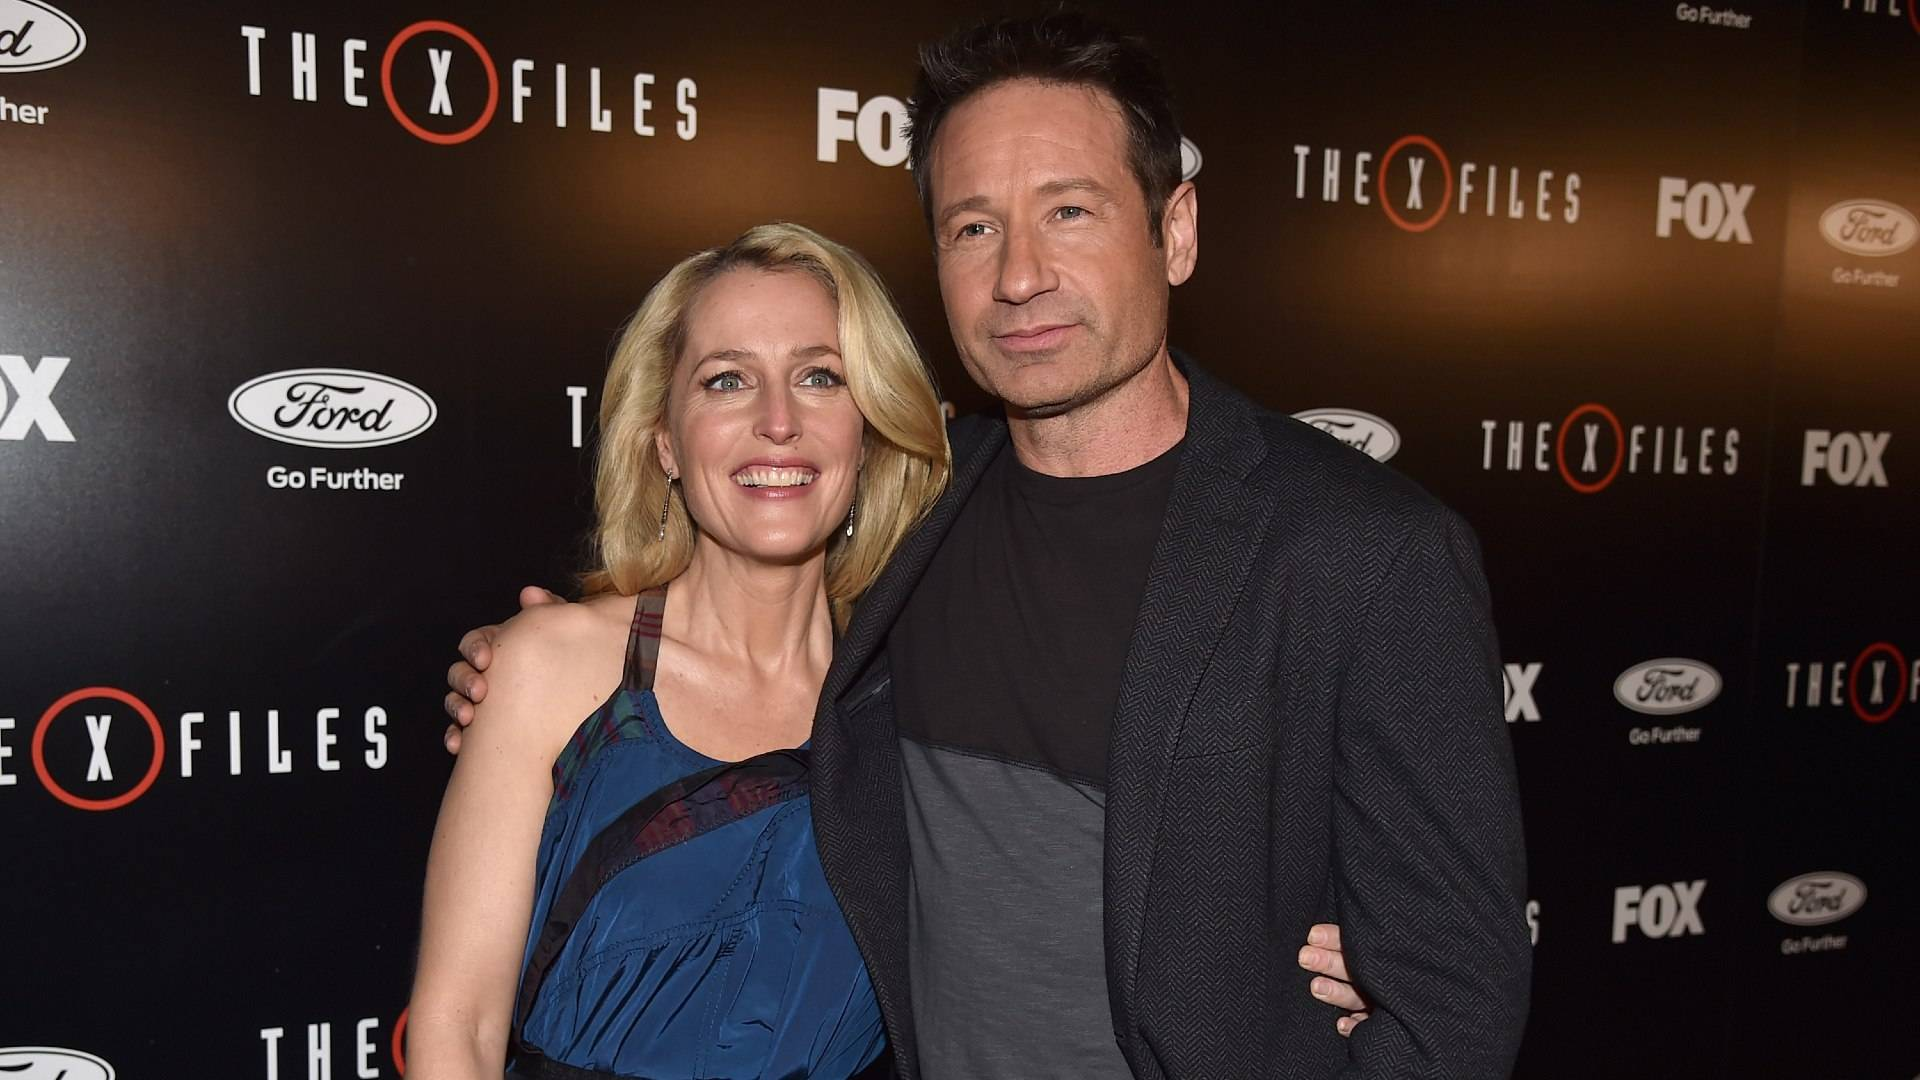 Mulder e Scully (X-Files), foto: Getty Images